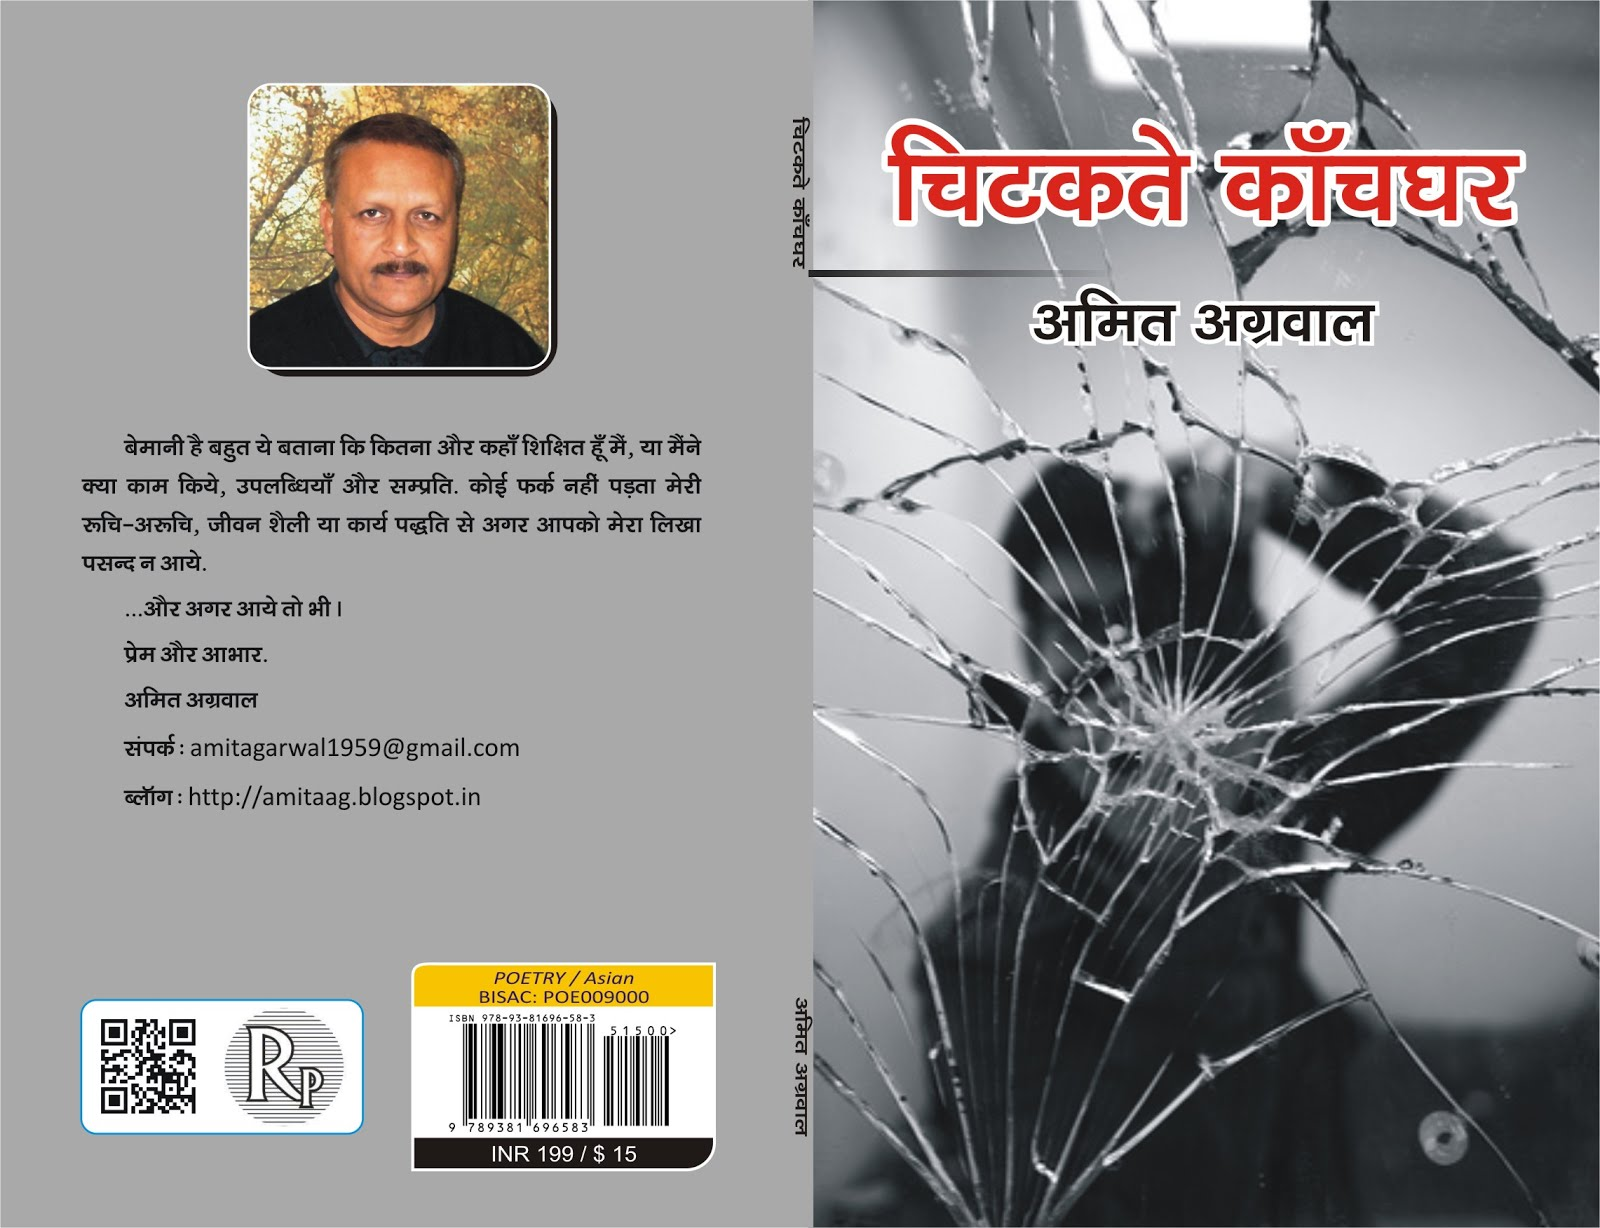 My solo collection of Hindi poems